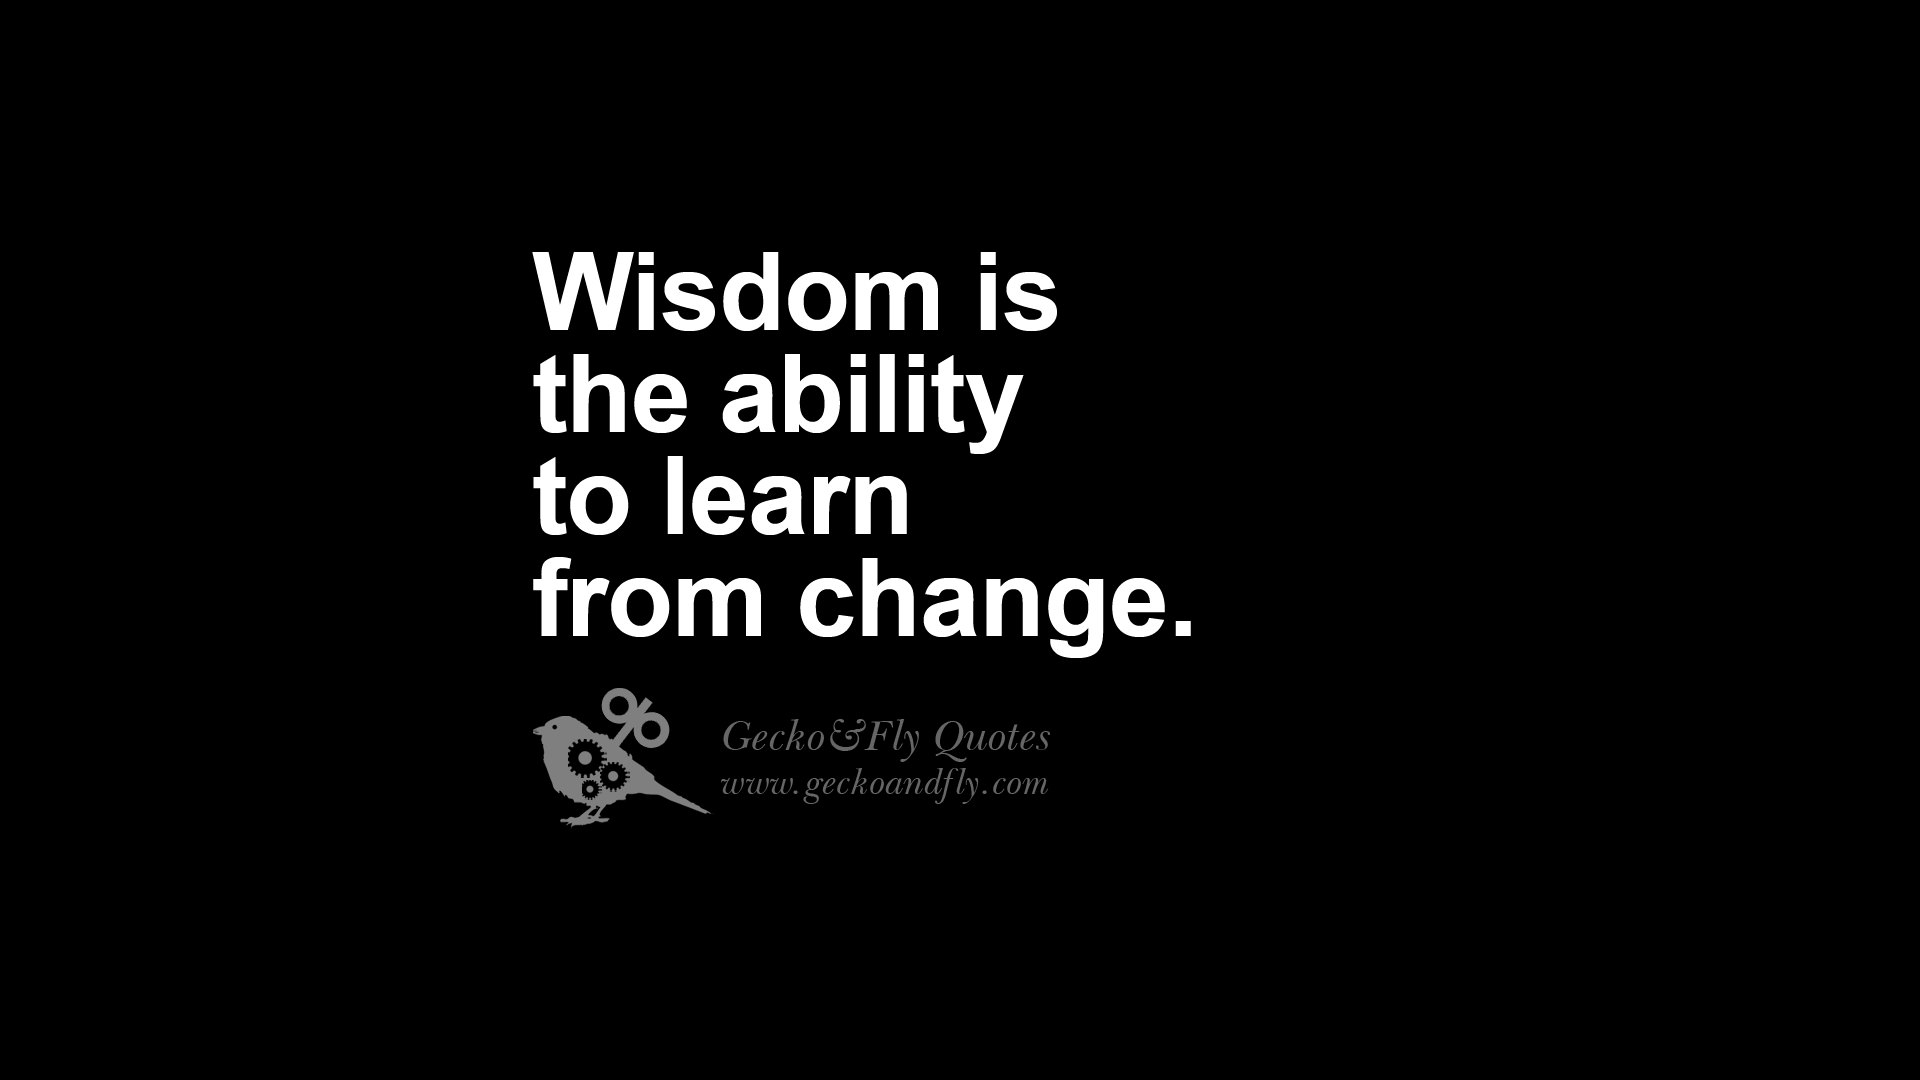 Wise Quotes About Life 24 Funny Eye Opening Quotes About Wisdom, Truth And Meaning Of - Daily Qoute